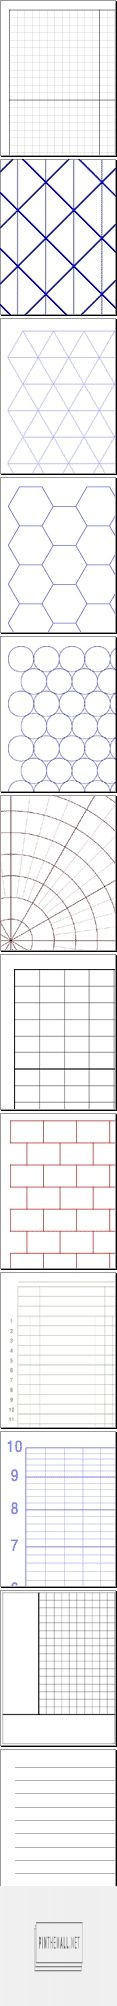 Best 25+ Grid paper printable ideas on Pinterest Bullet journal - numbered graph paper template